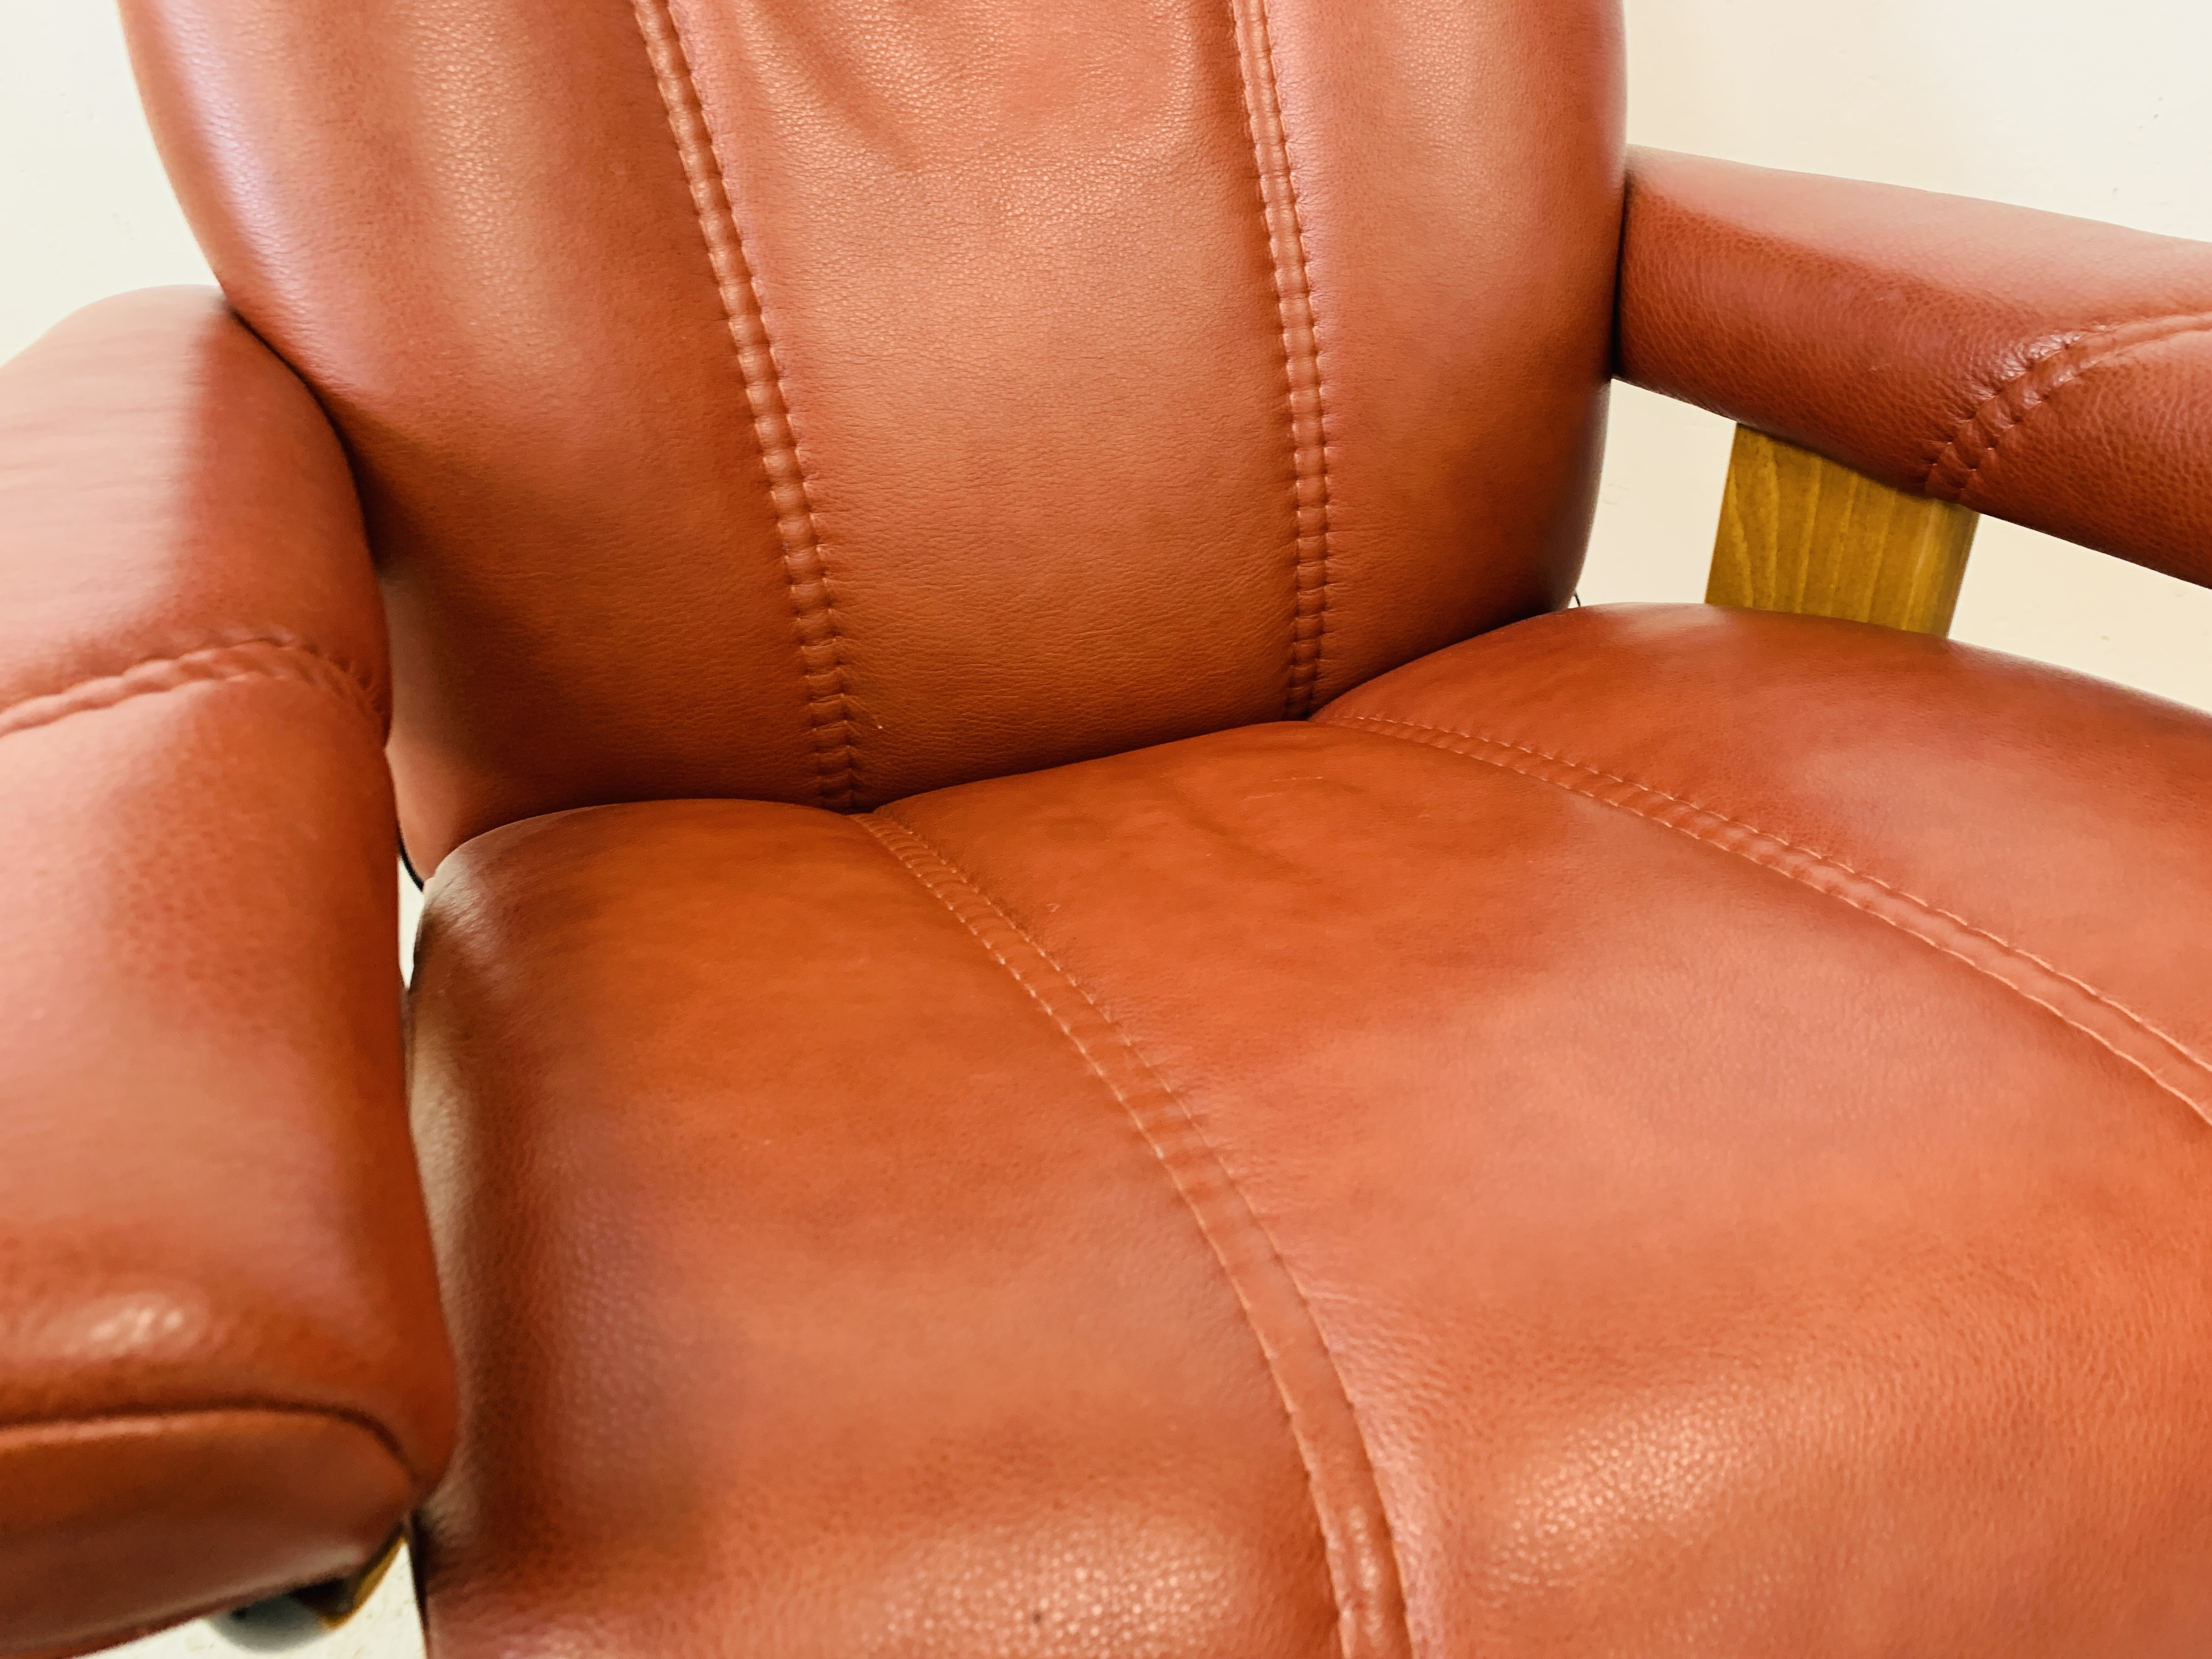 A STRESSLESS TAN LEATHER RELAXER CHAIR - Image 10 of 12